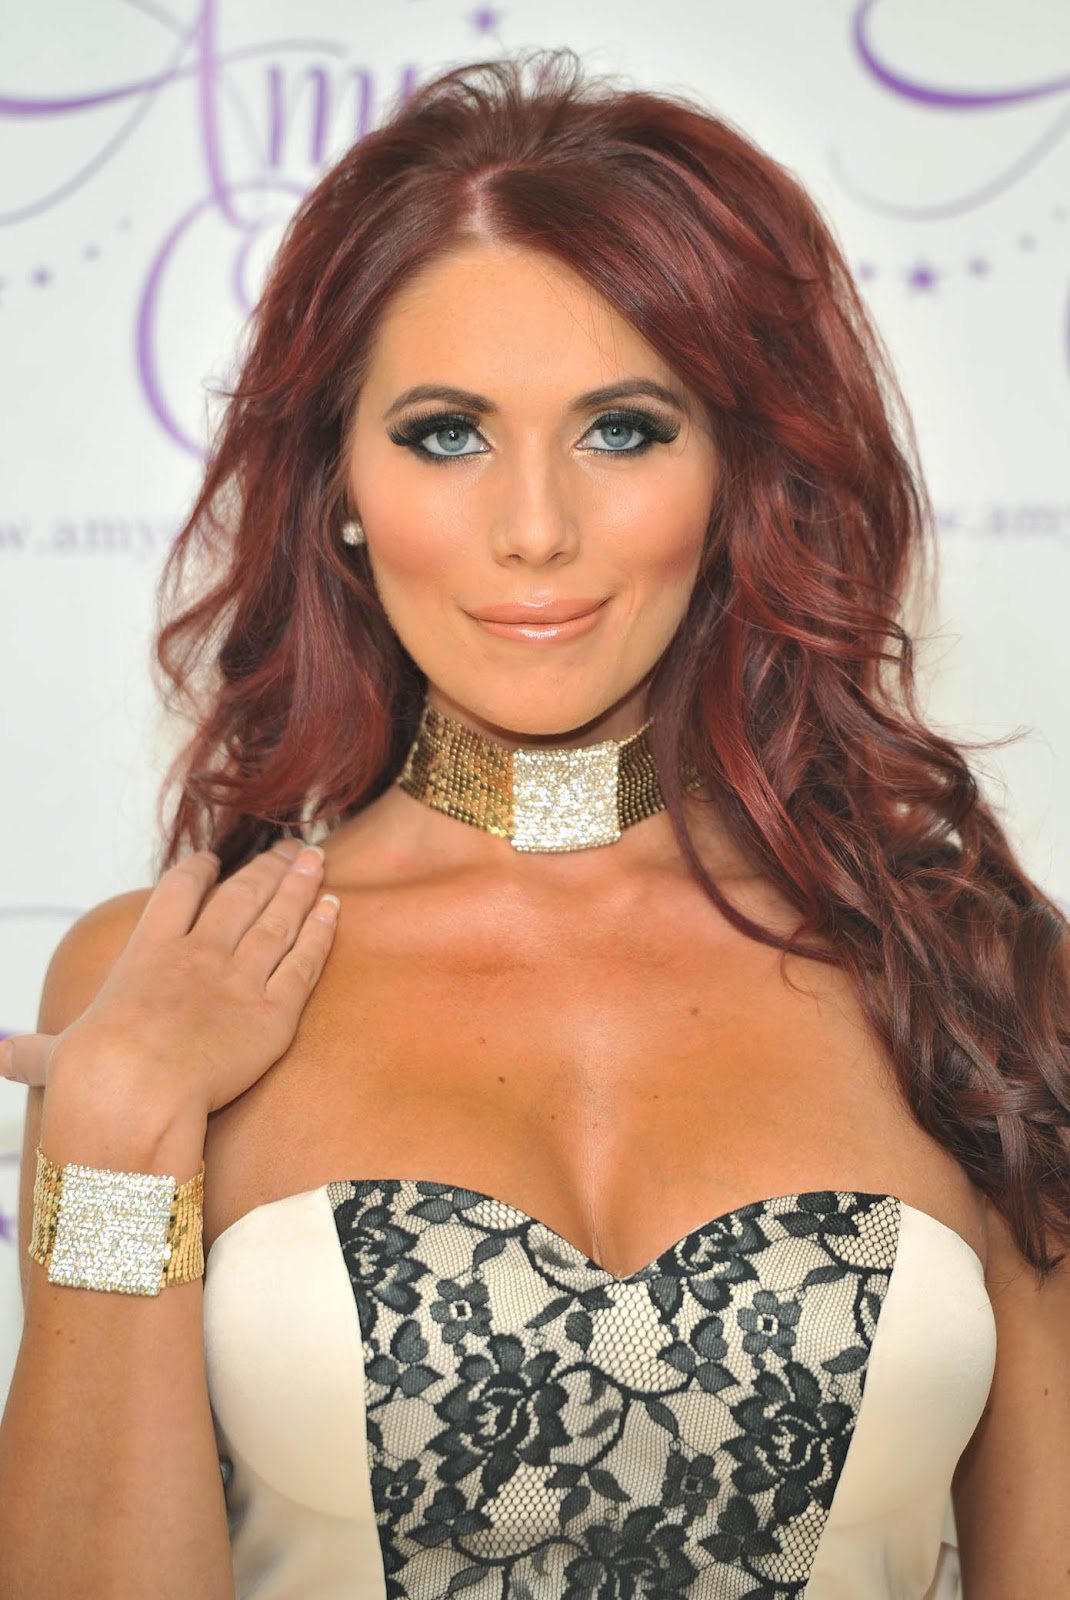 Amy Childs And Her Big Boobs | HQ Celebs Daily